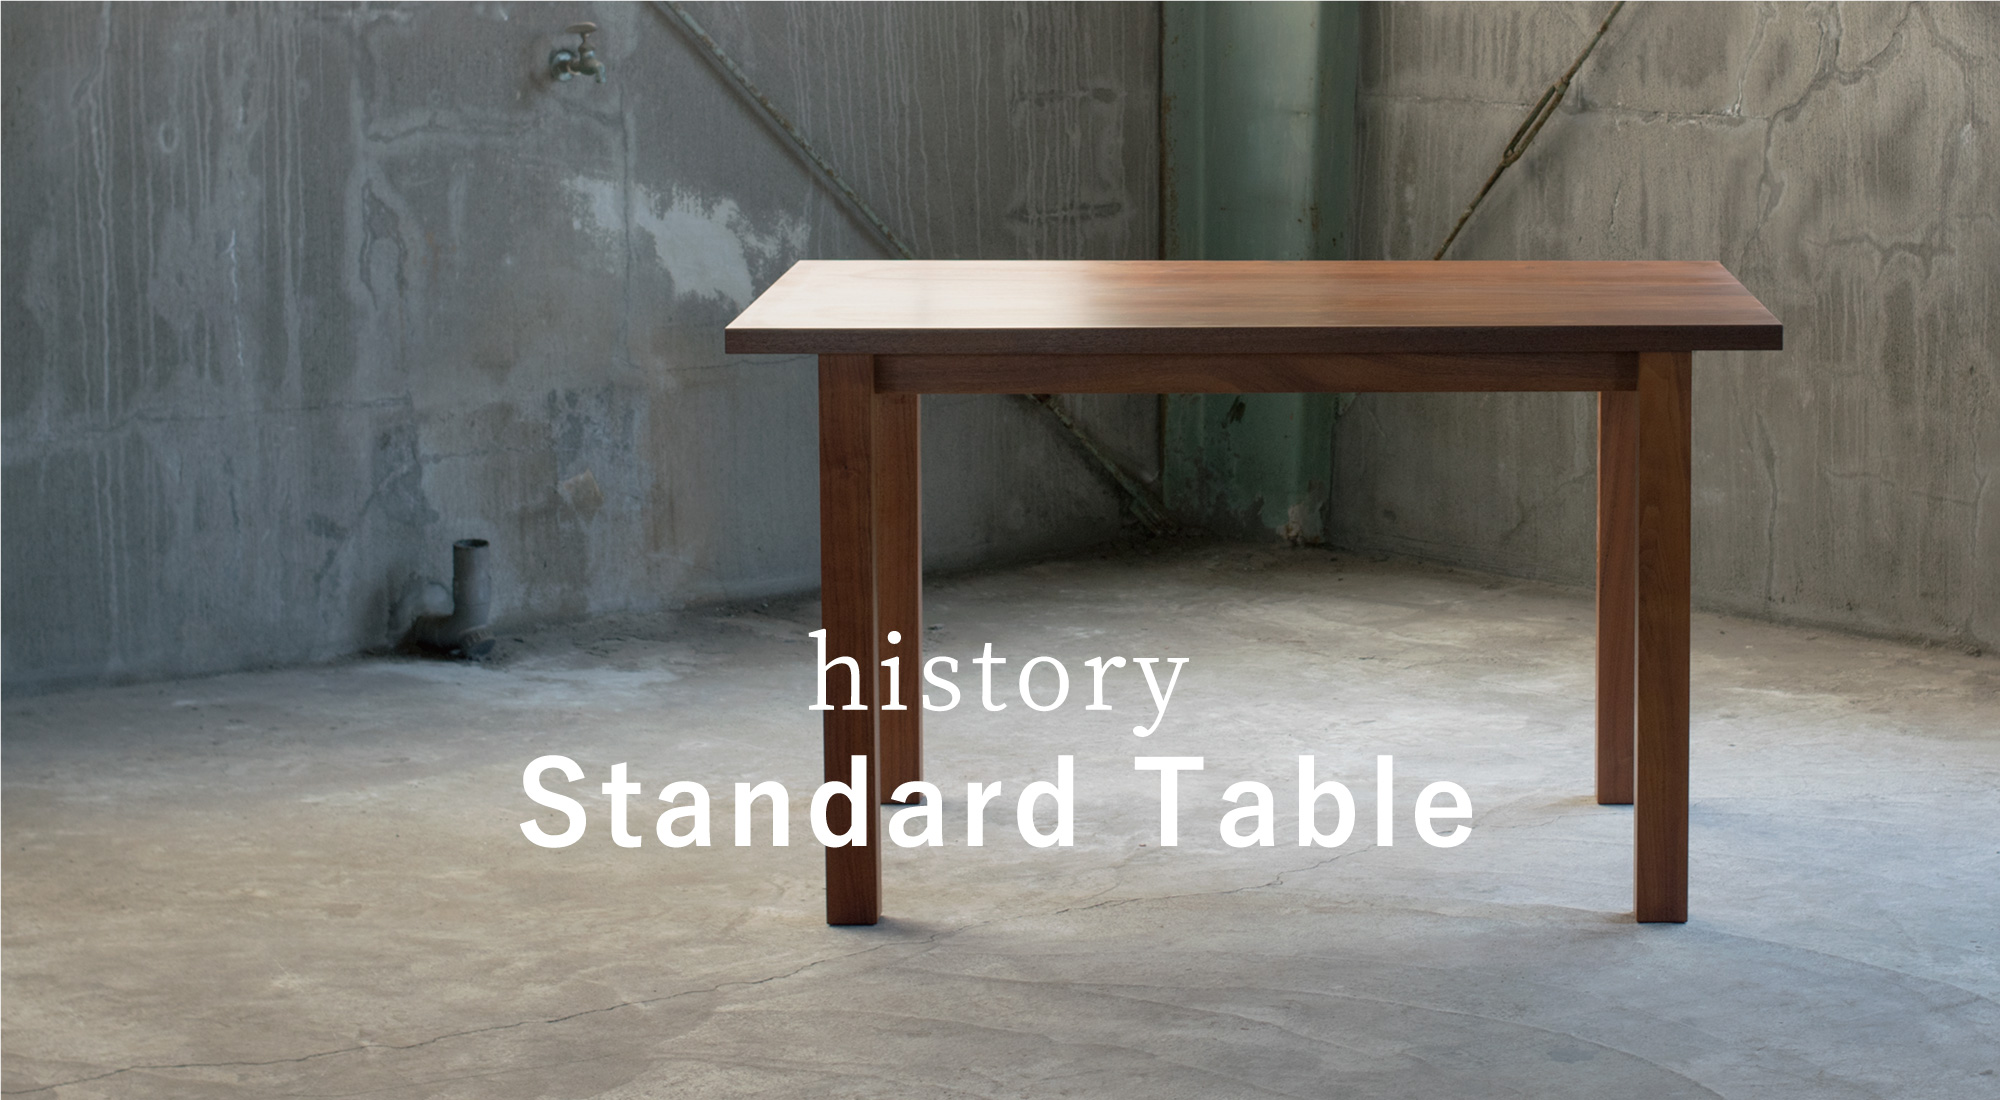 history of STANDARD TABLE